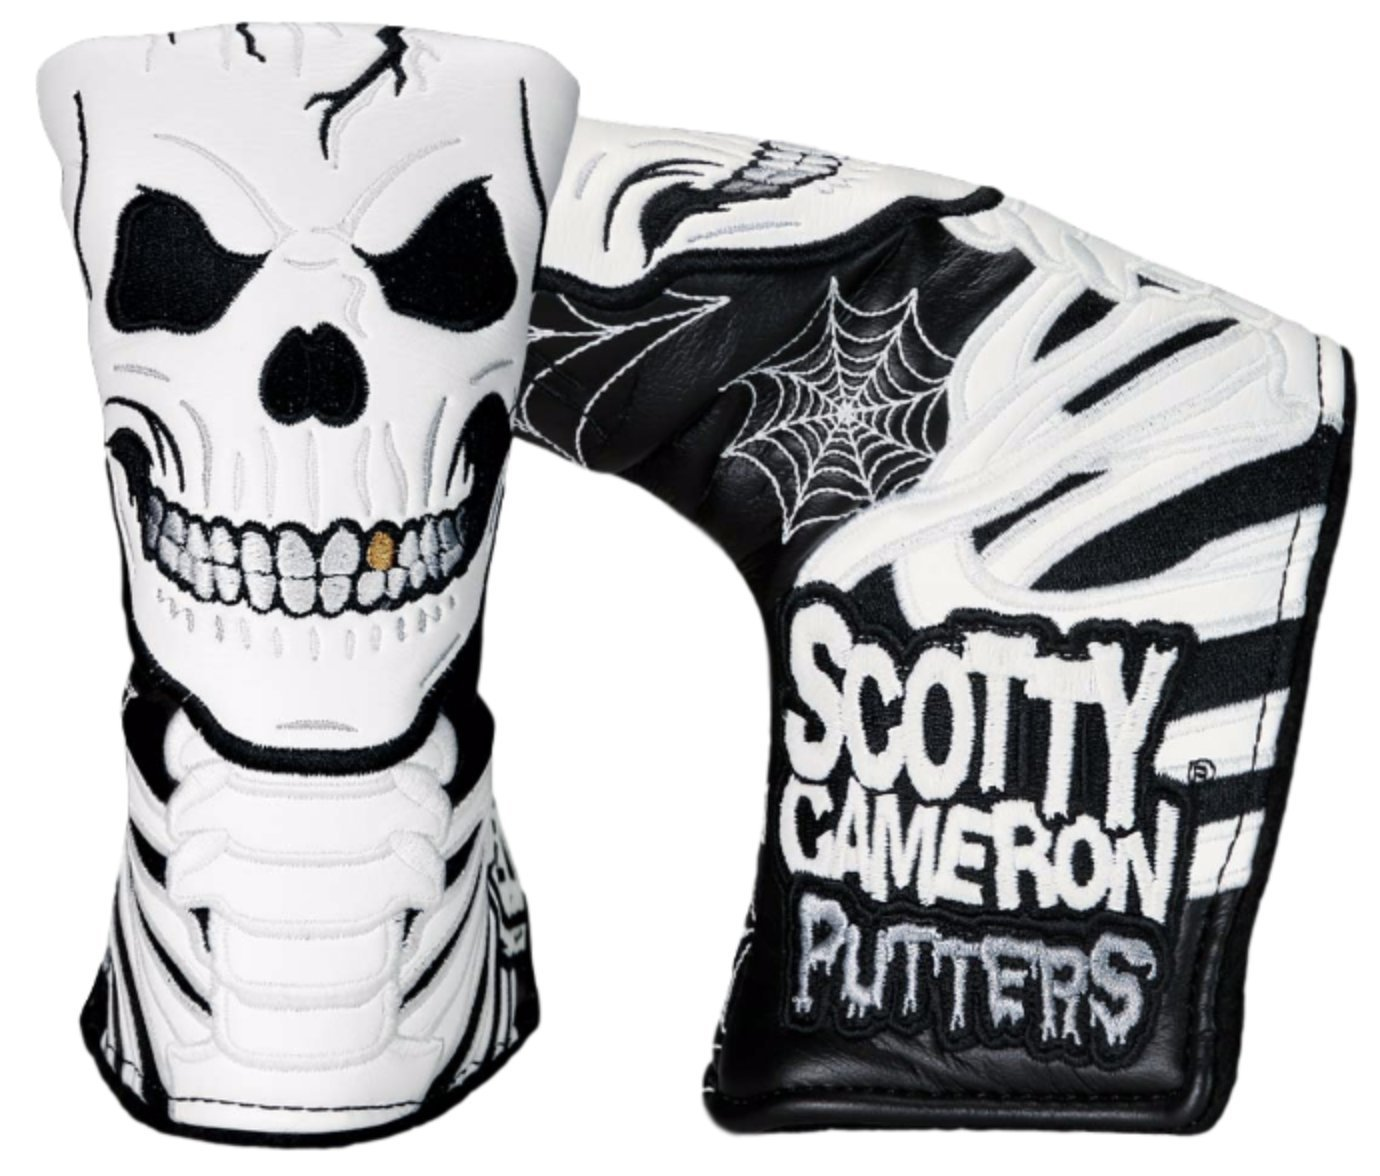 Scotty Cameron 2017 Halloween ''Knock Em Dead '' Limited Edition Putter Cover